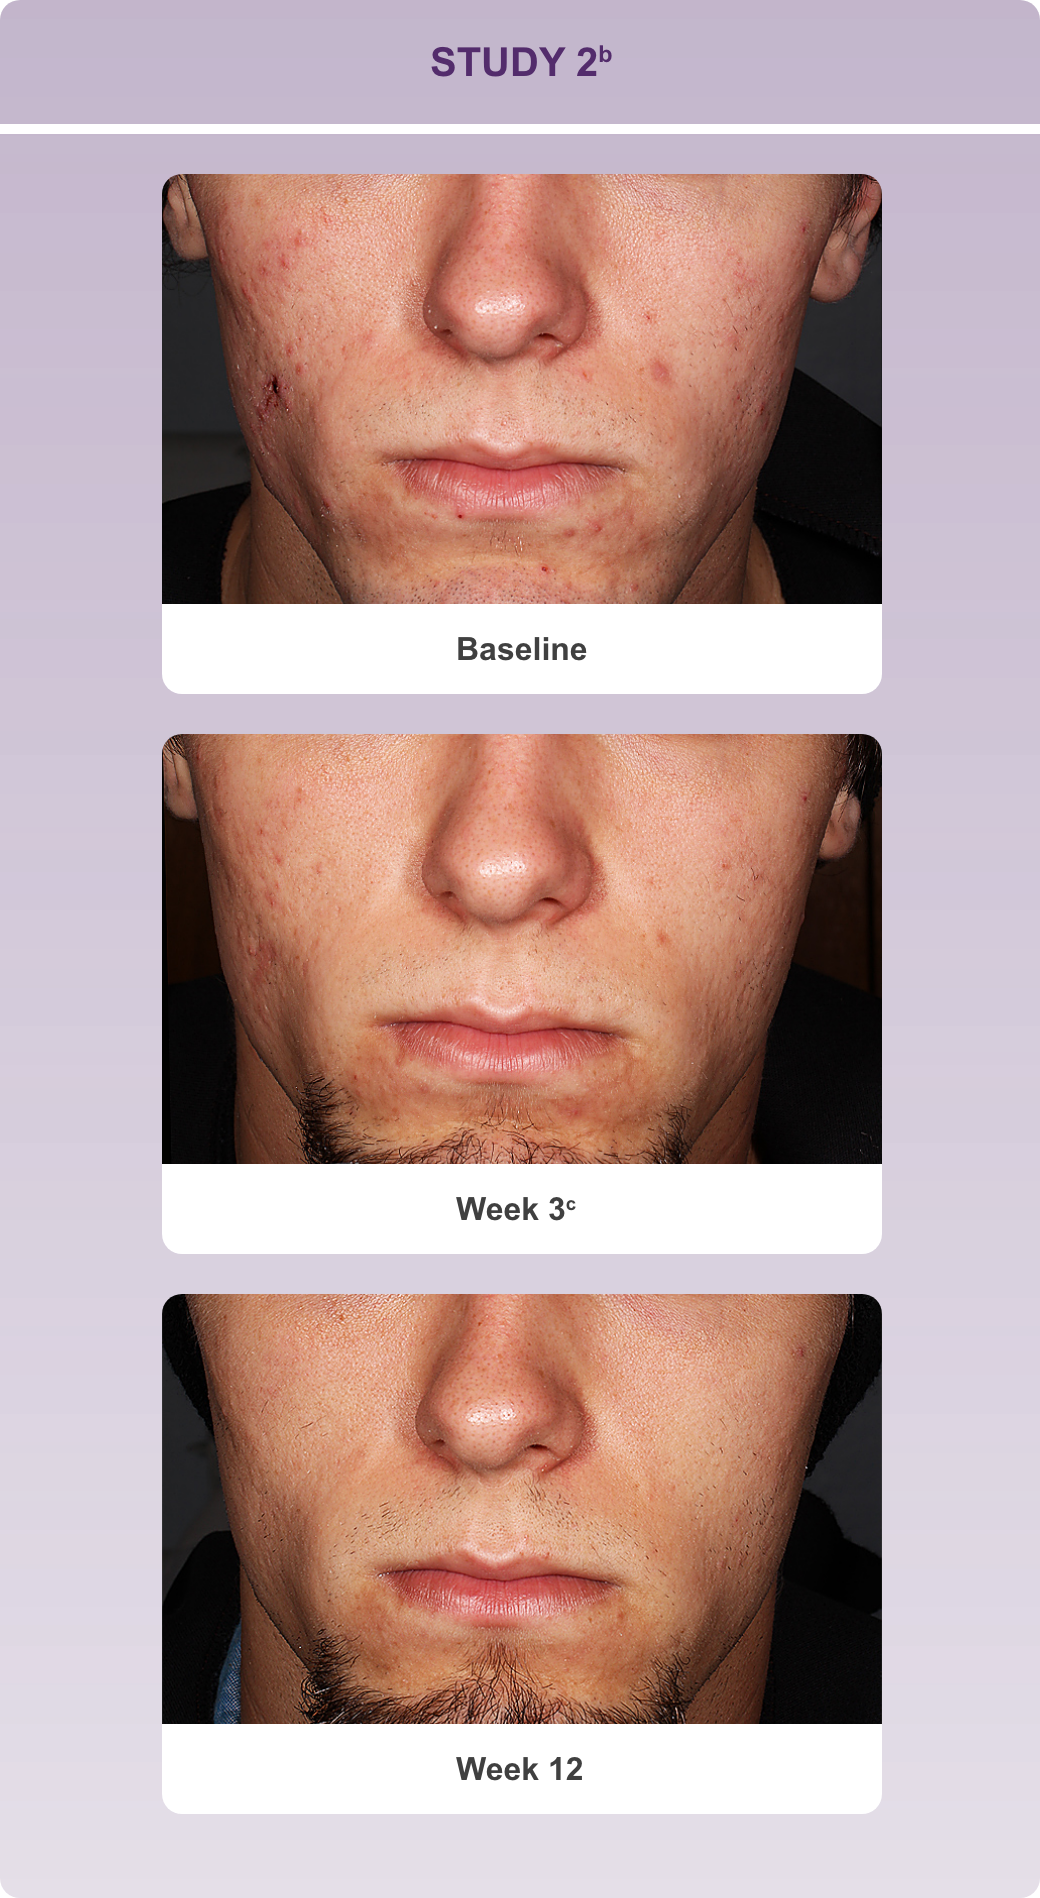 Series of progressive reduction in lesions on a subject's face at baseline, week 3 and week 12 in study 2